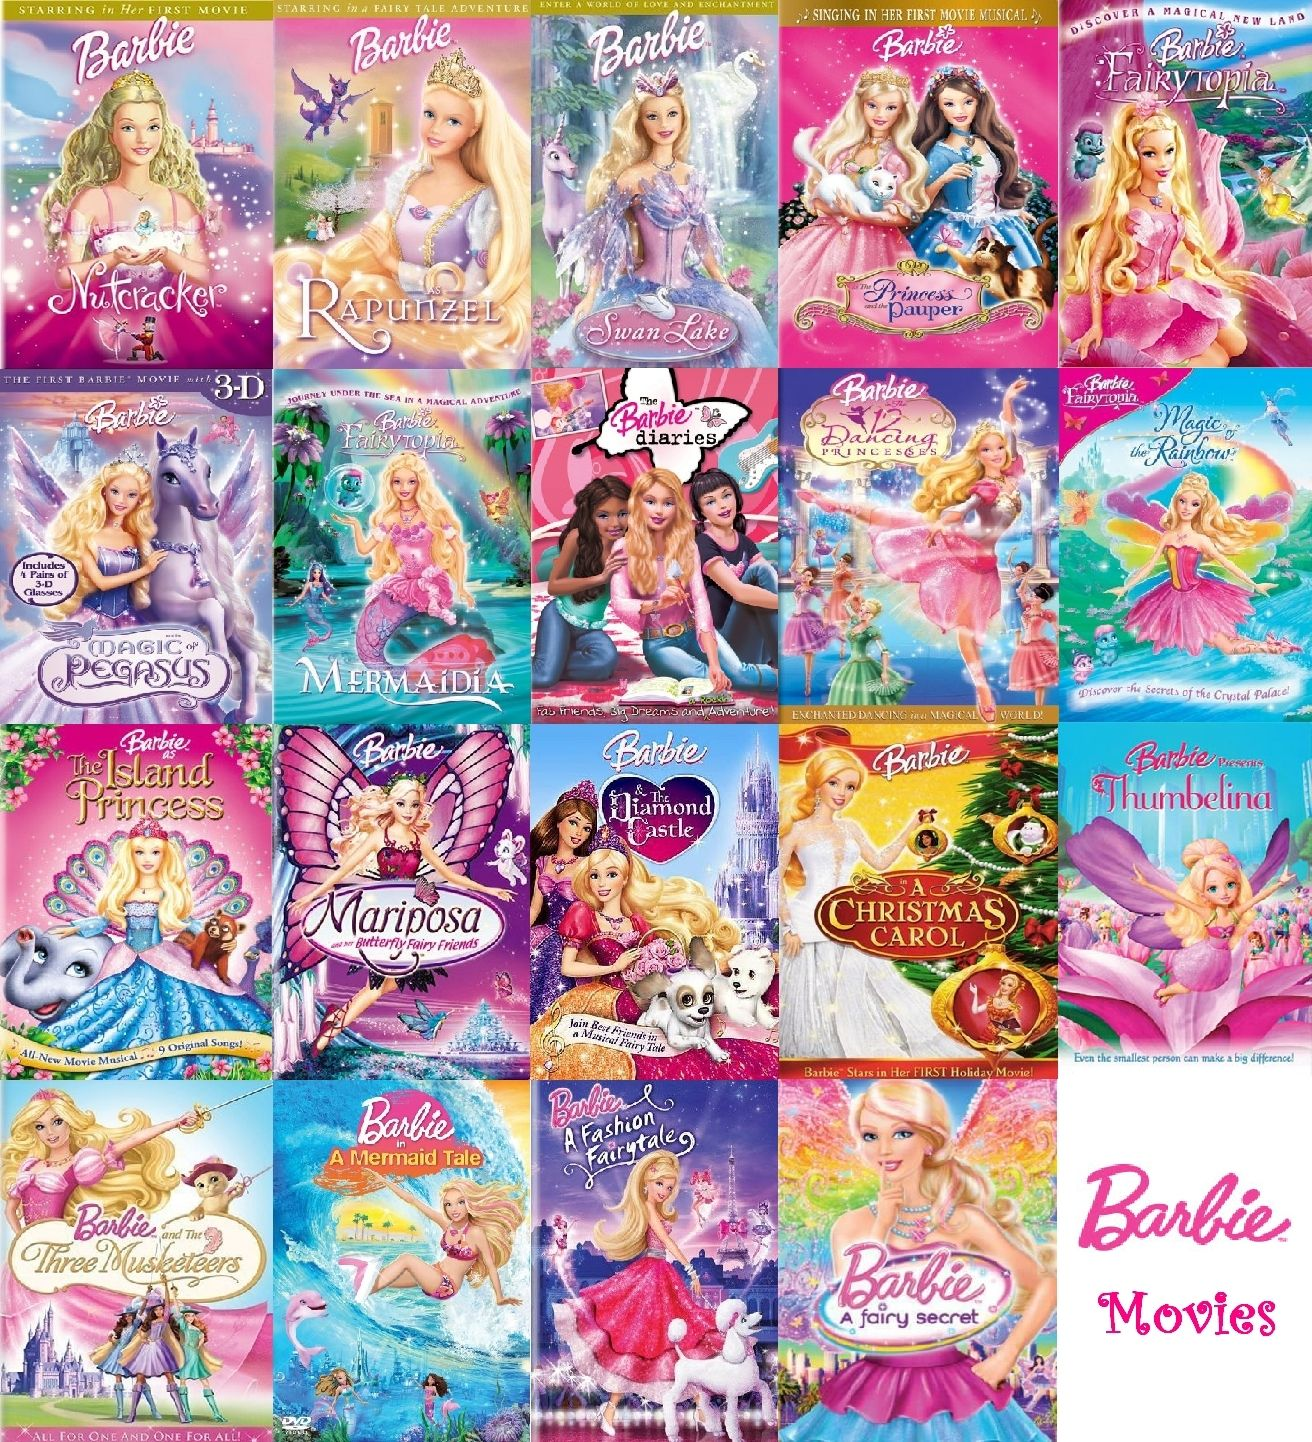 Barbie Movies Fan Art Barbie Movies Collection Complete Barbie Movies Barbie Cartoon Movie Collection